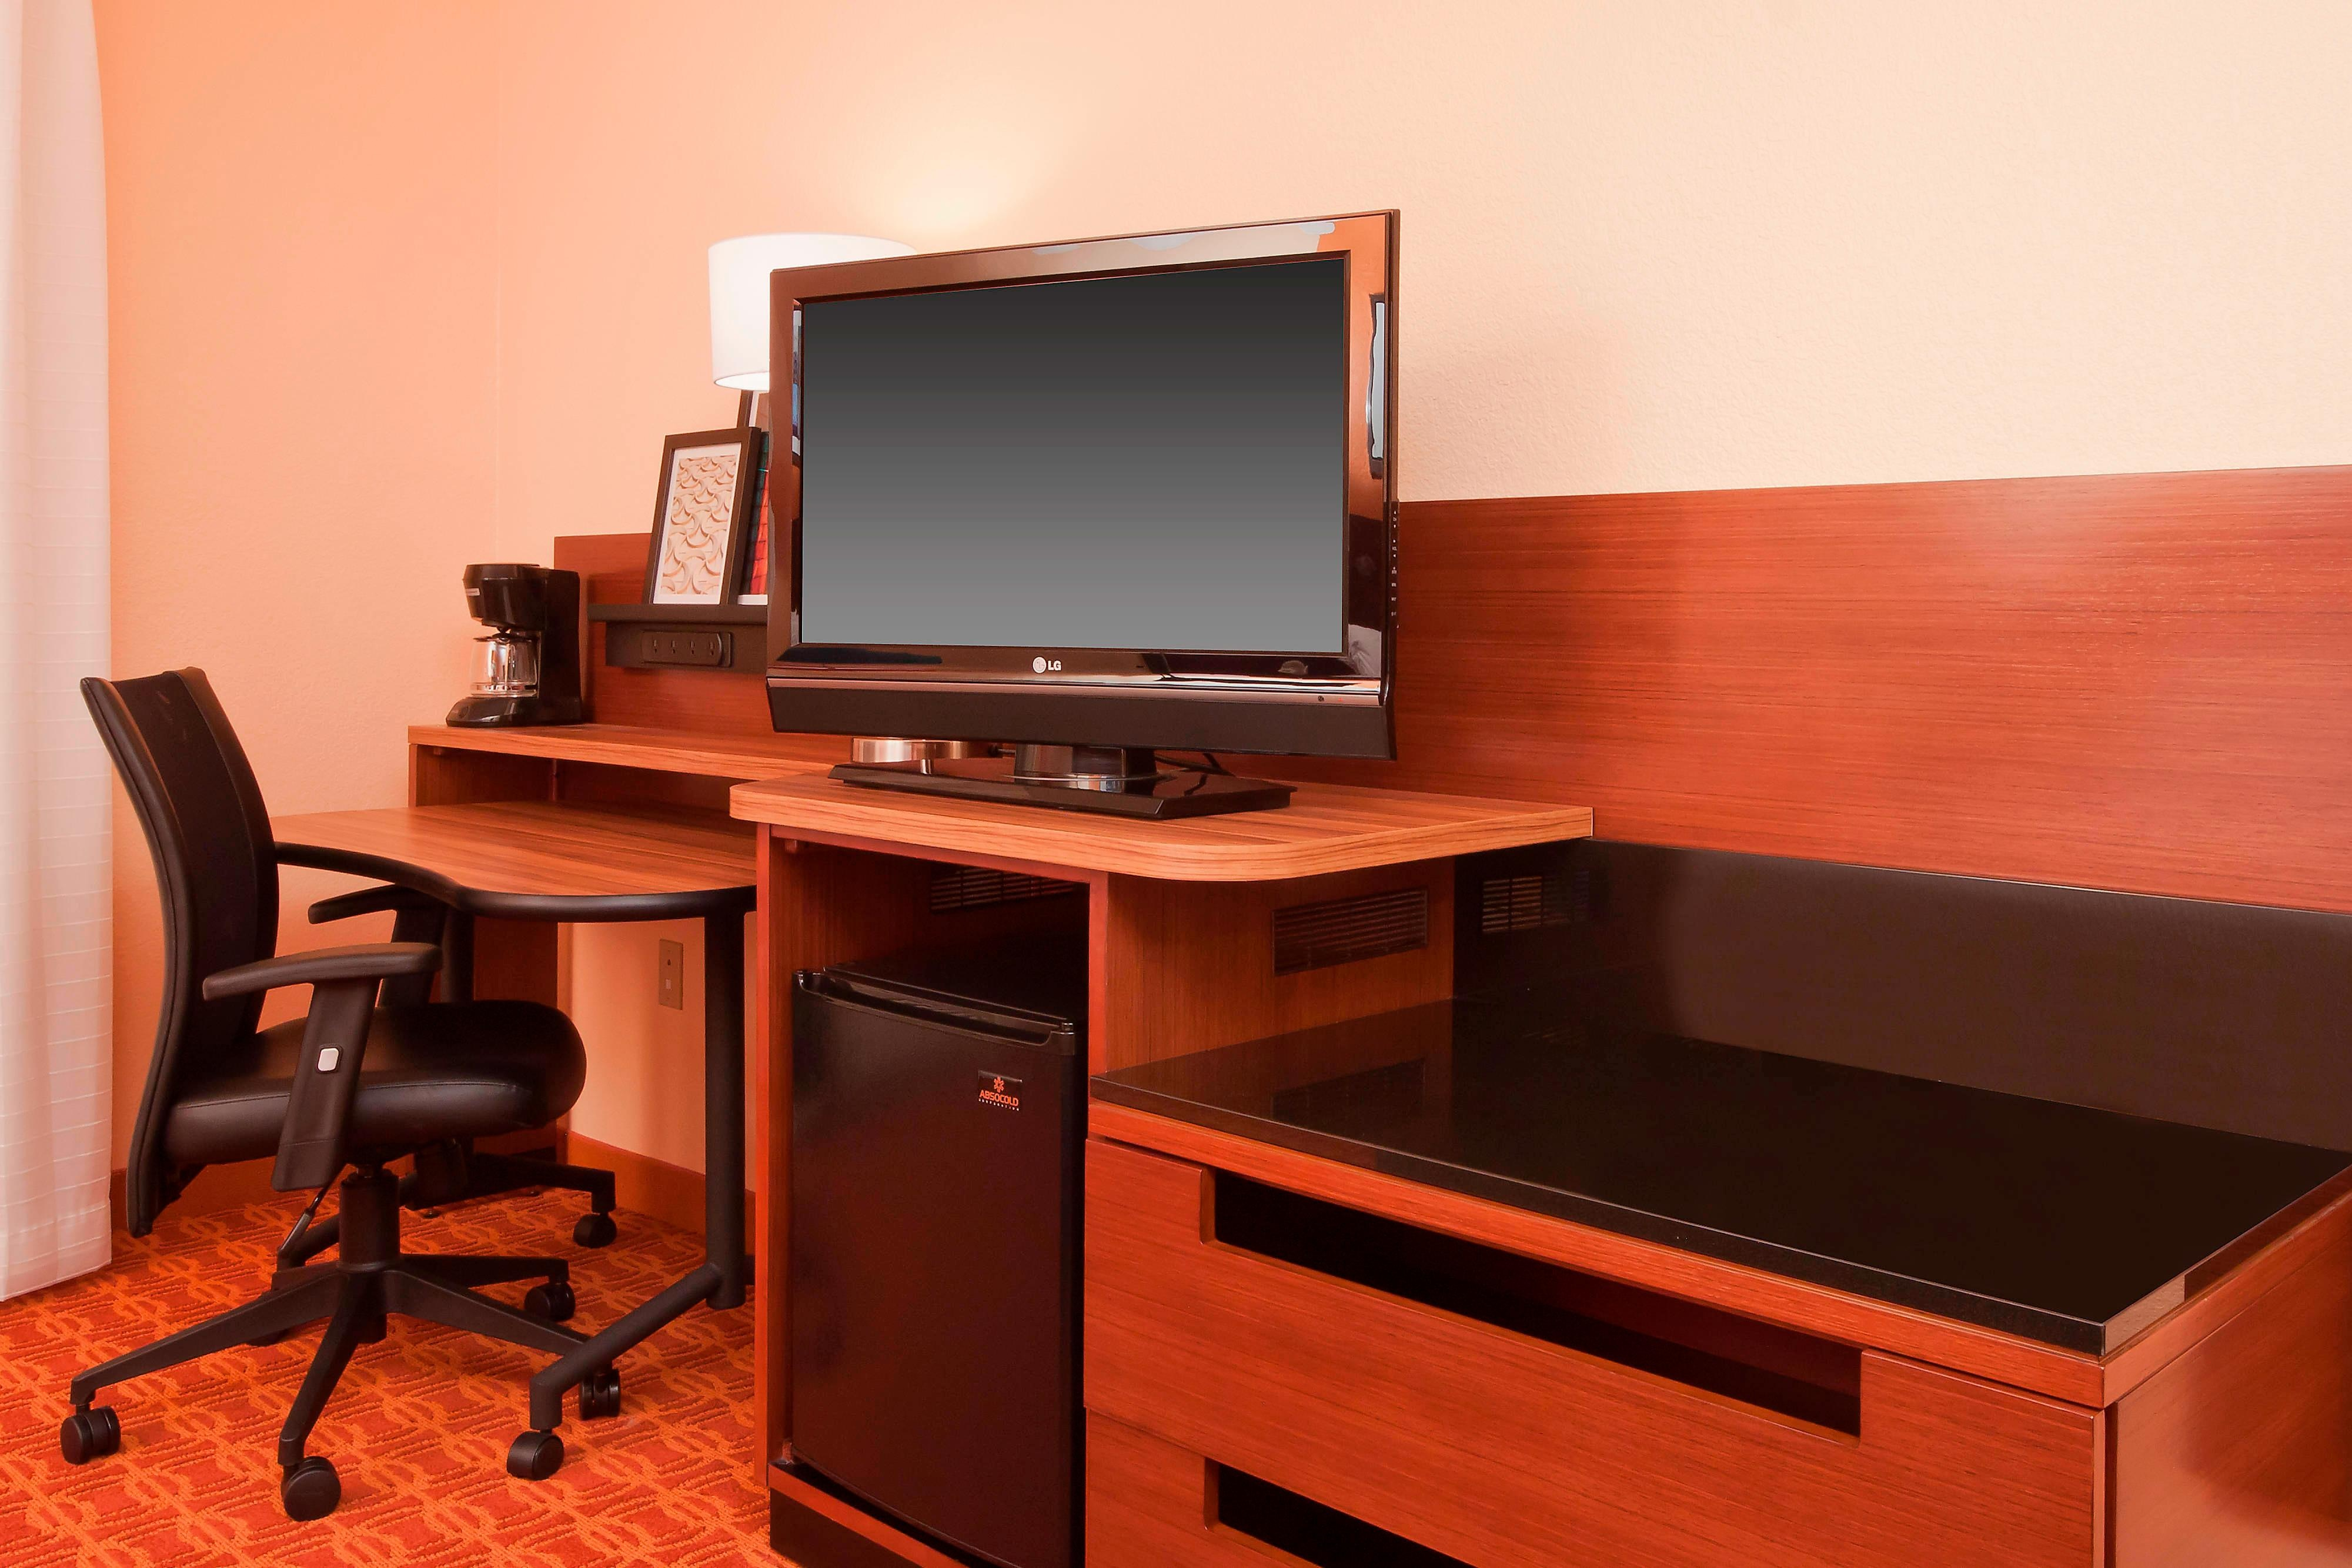 Marriott Hotel Work Desk